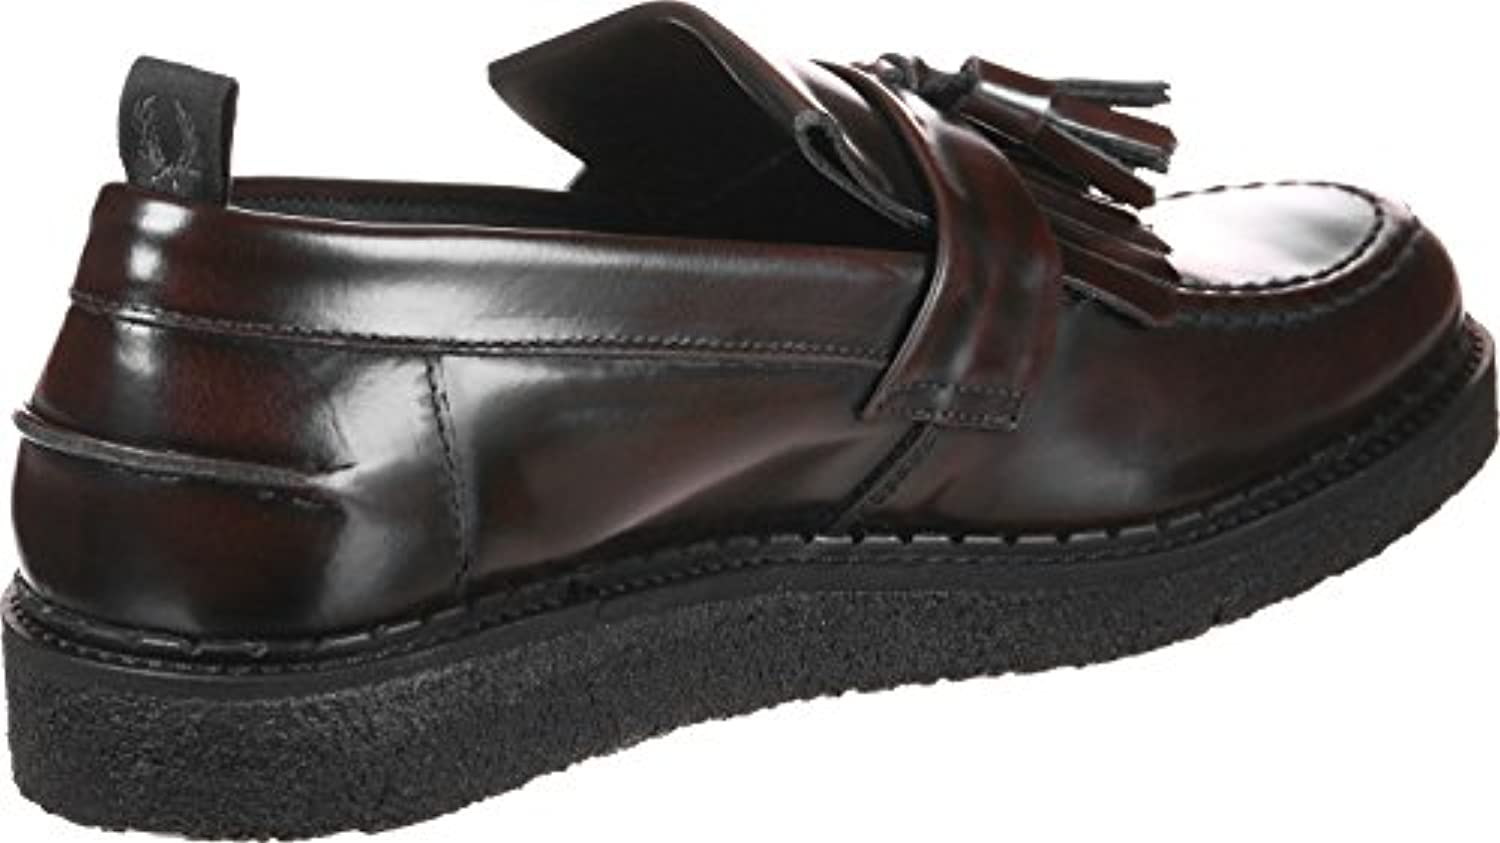 Fred Perry FS x GC Tassel Loafer Leather Calzado